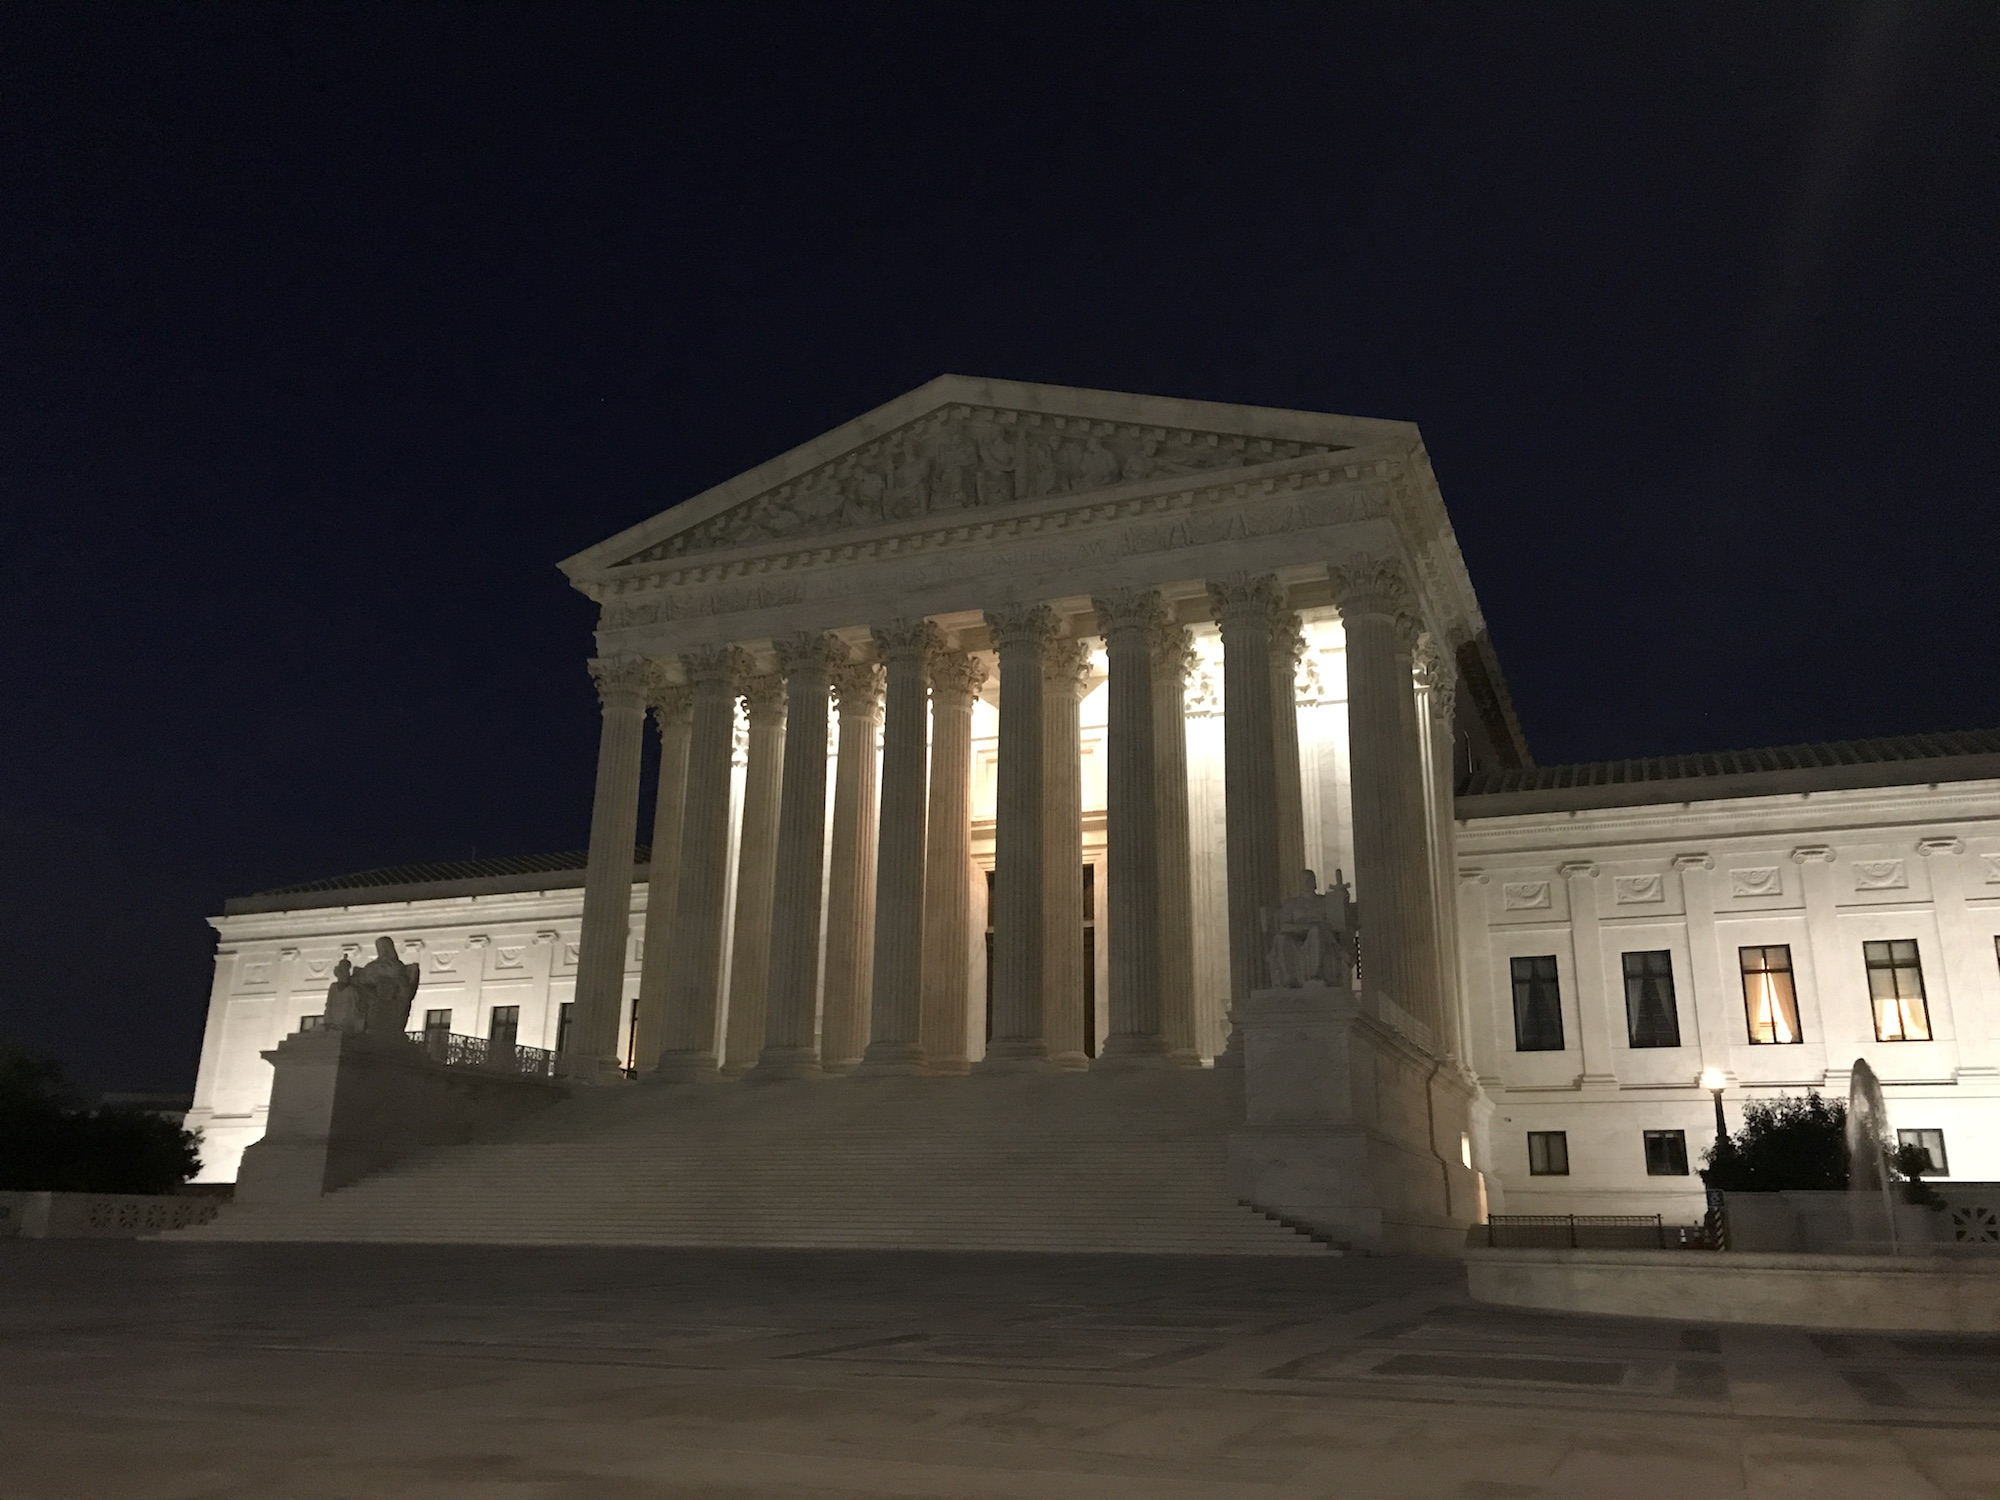 Supreme Court shakes up docket by accepting sovereignty case at request of tribe